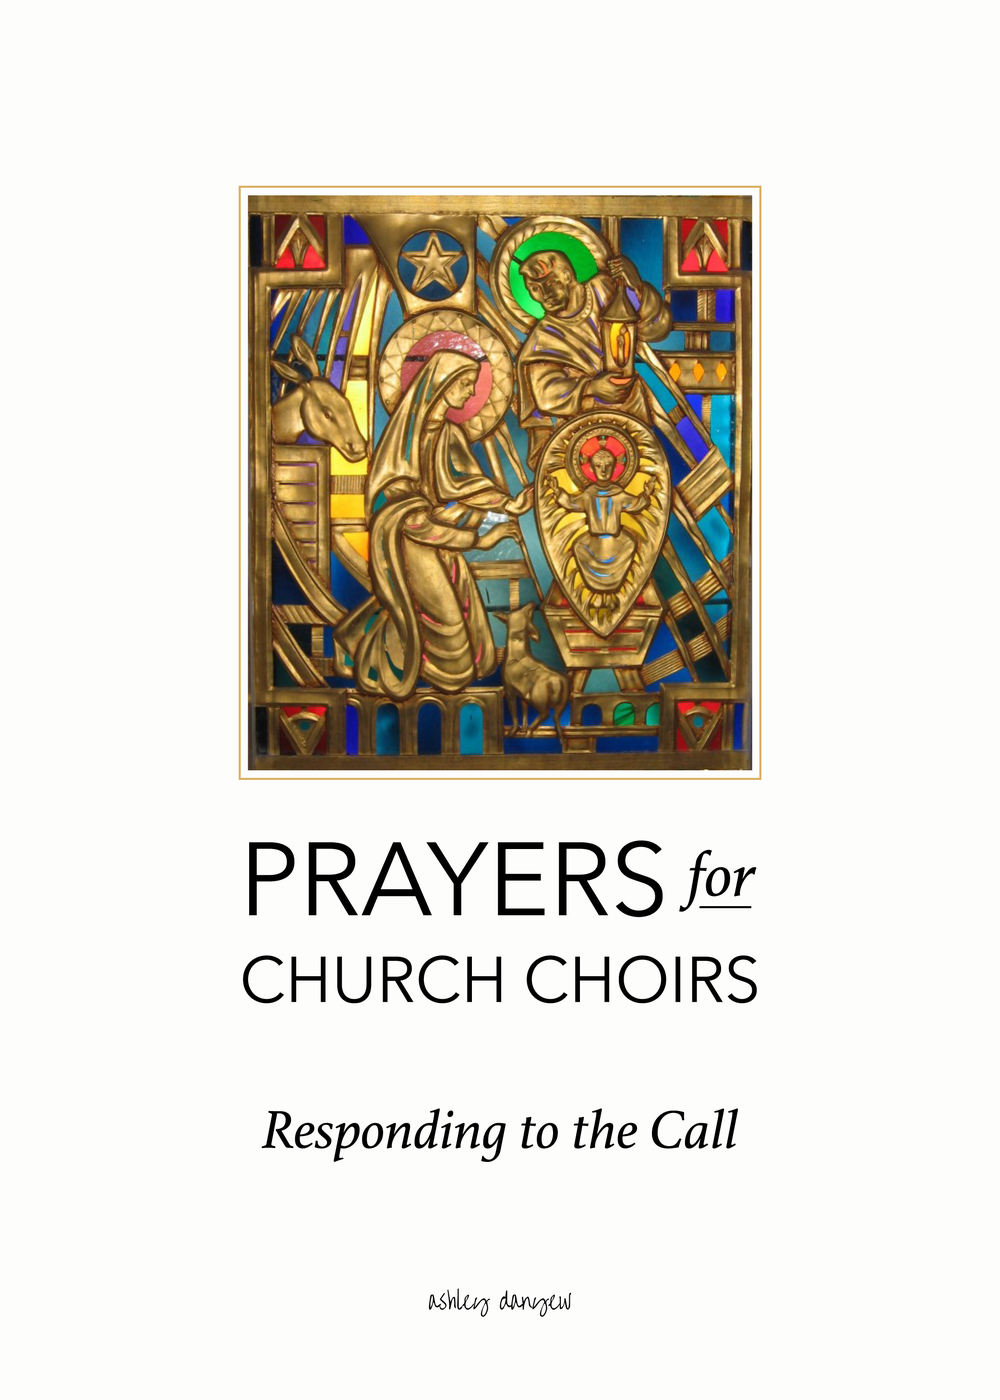 Prayers-for-Church-Choirs_The-Call-09.png